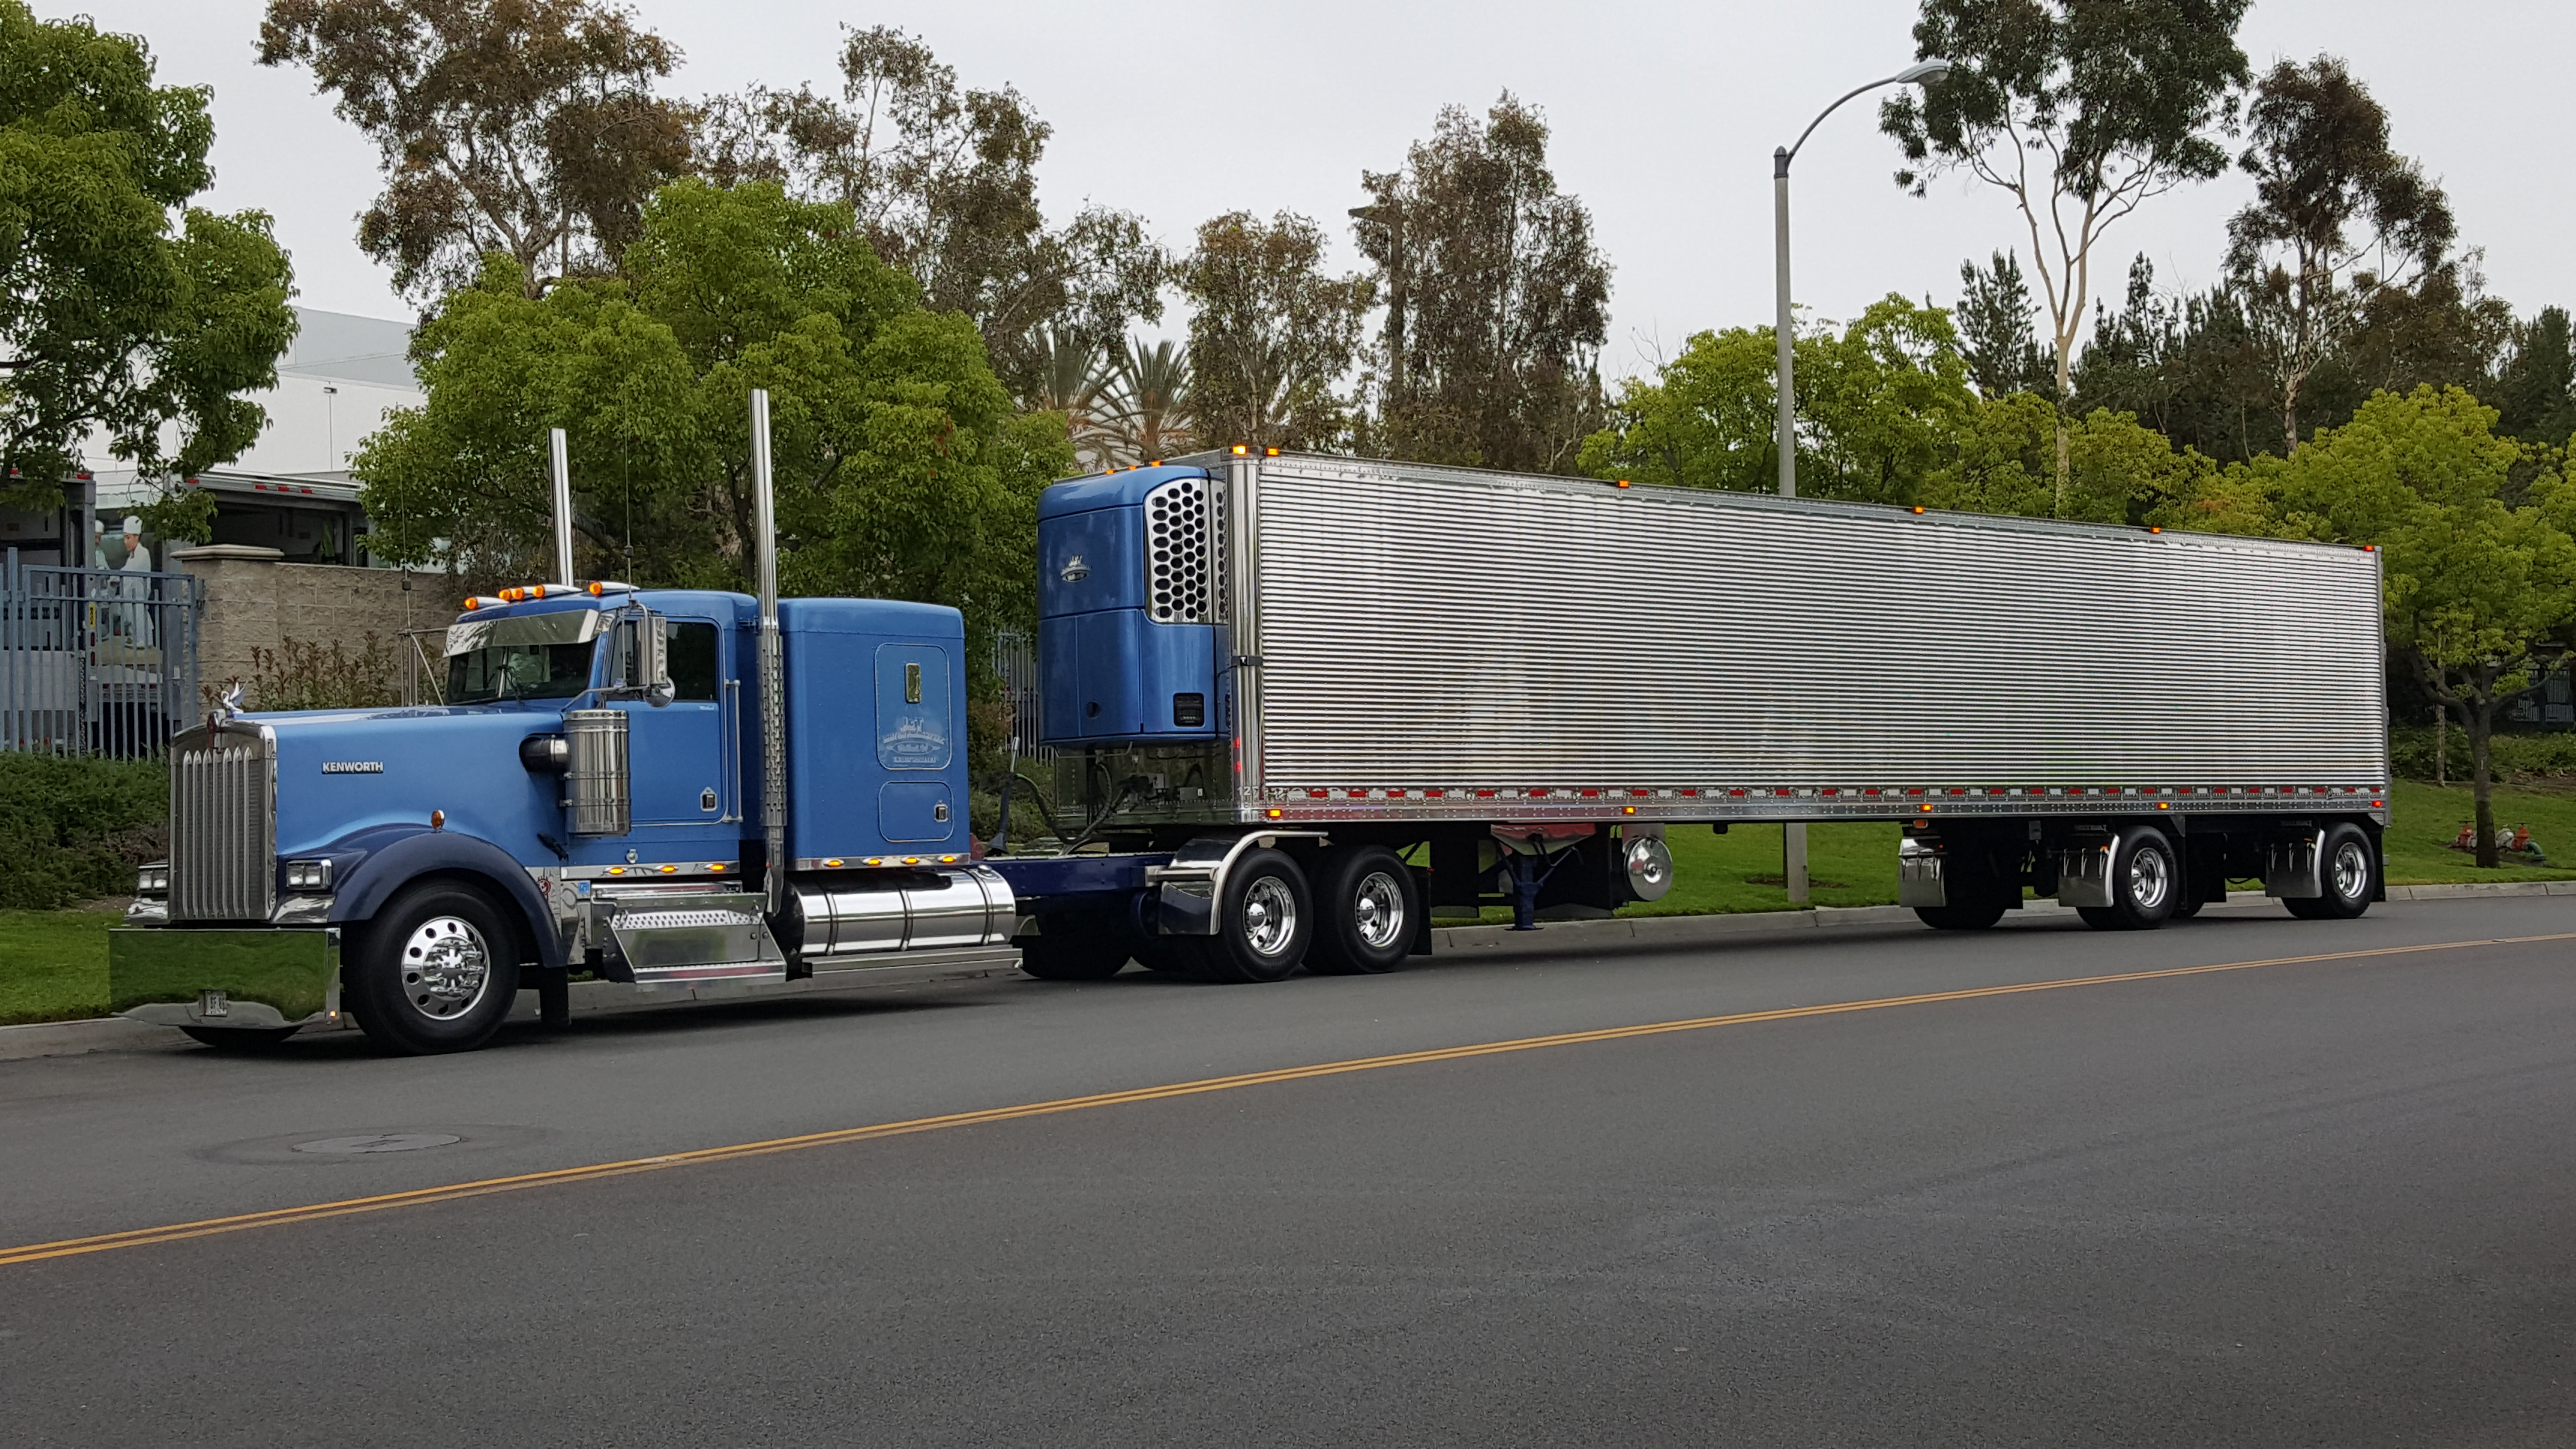 Michael's Mistress big rig, first picture.